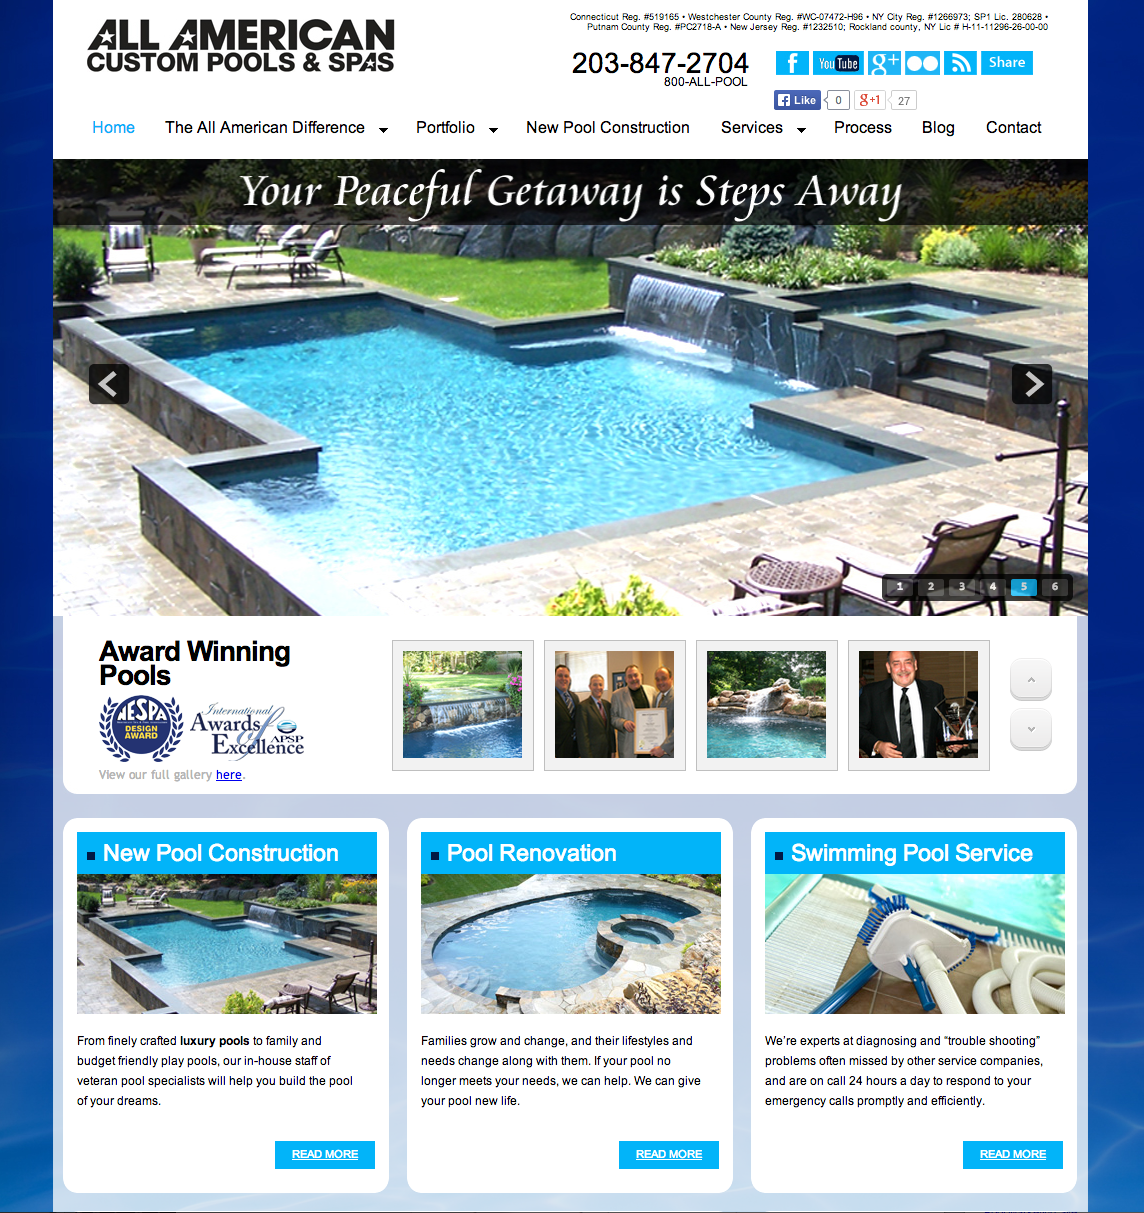 Client Profile: All American Custom Pools & Spas